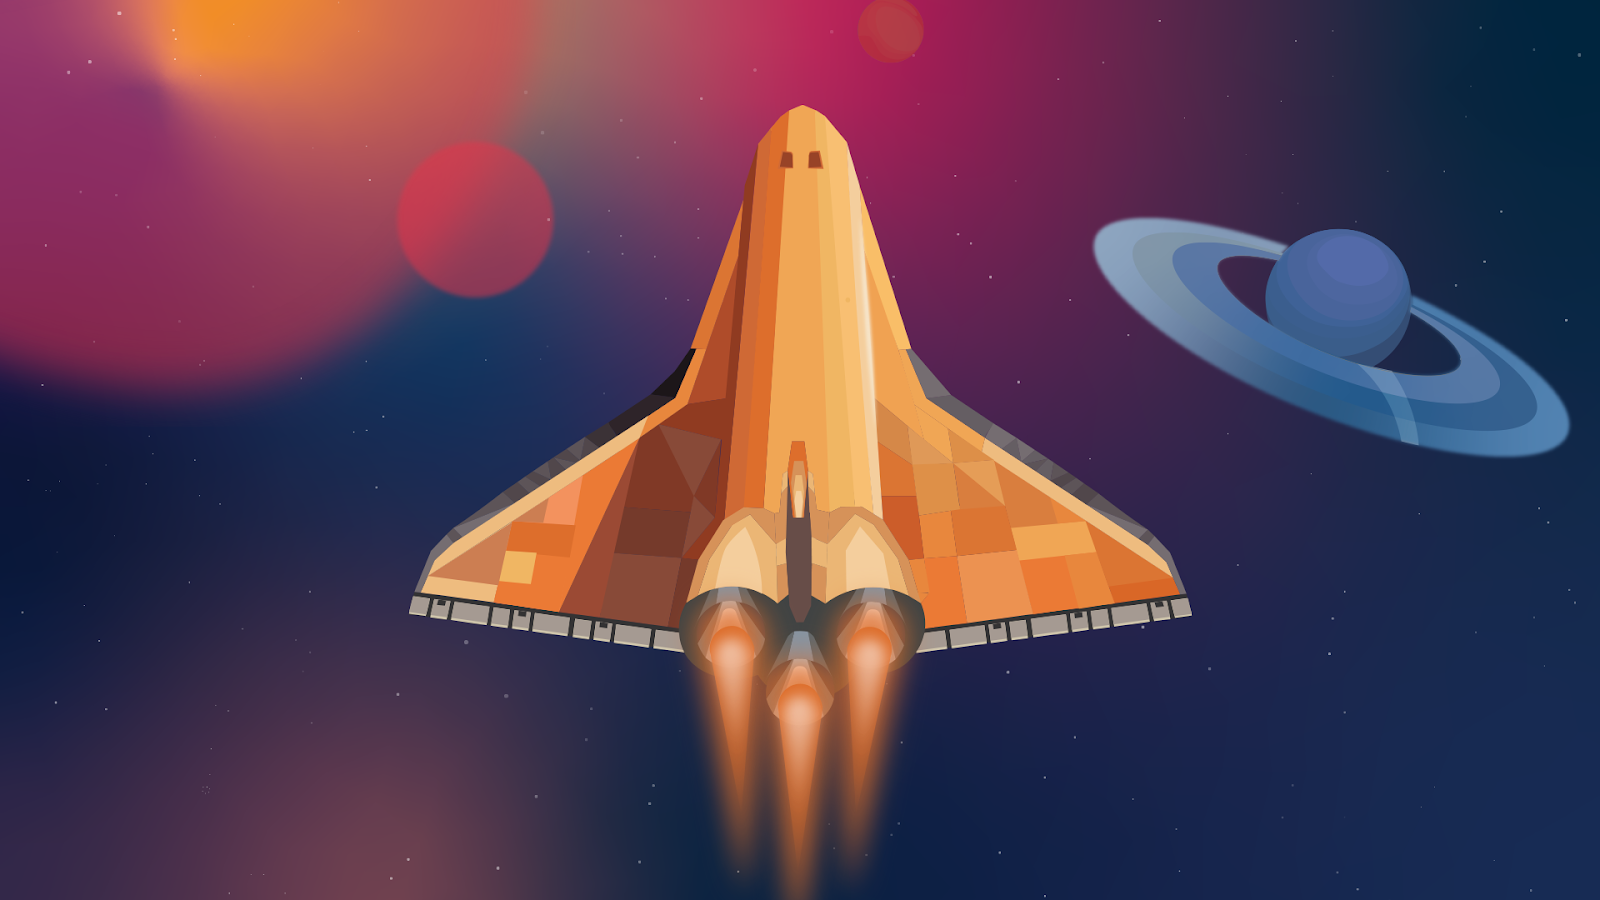 Illustration of rocket ship